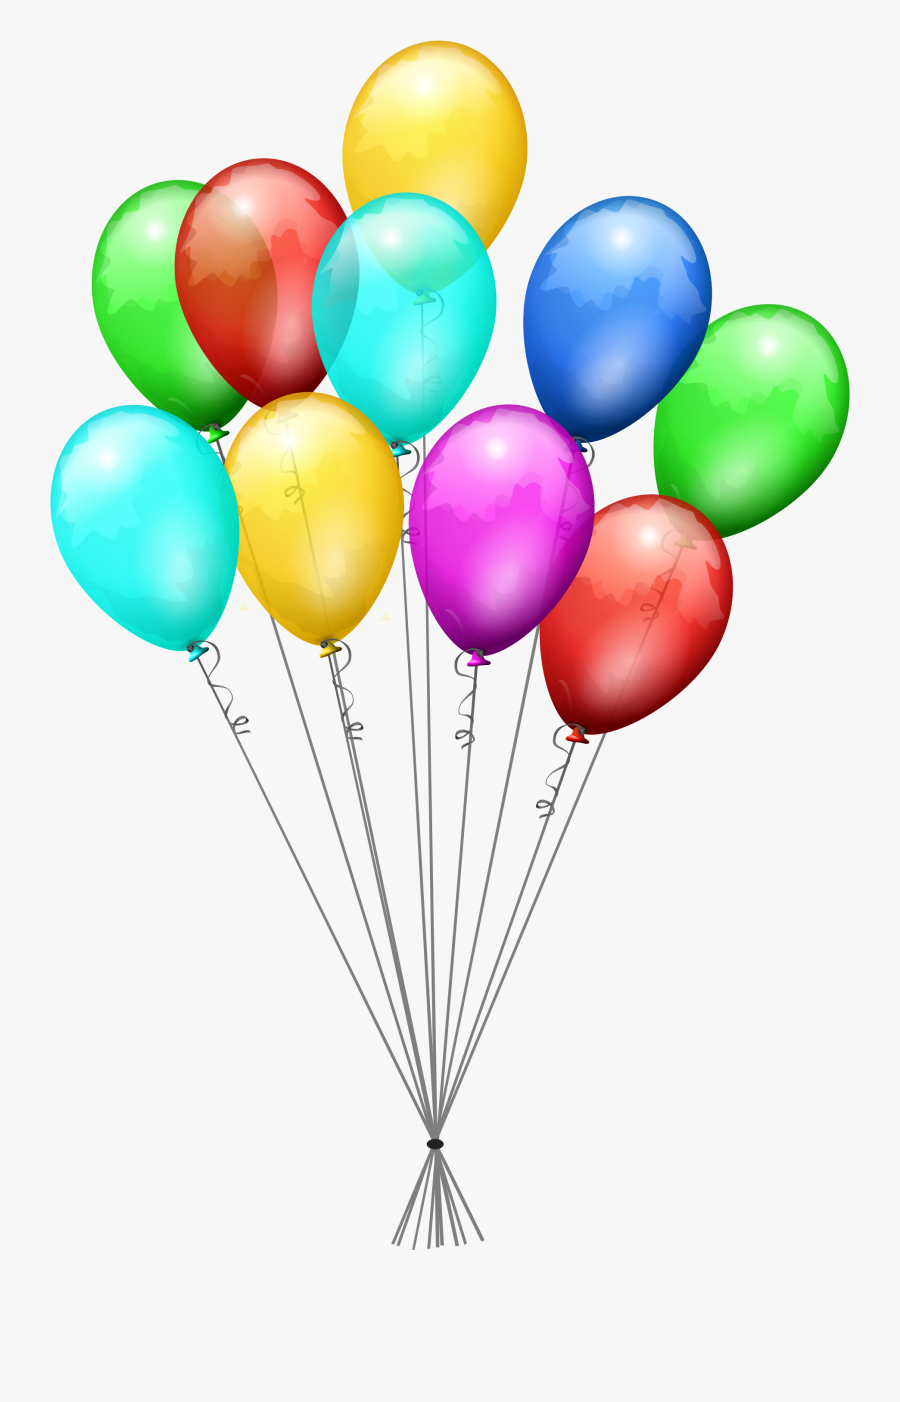 Birthday Baloons Png - Birthday Balloon Clipart Transparent Background, Transparent Clipart